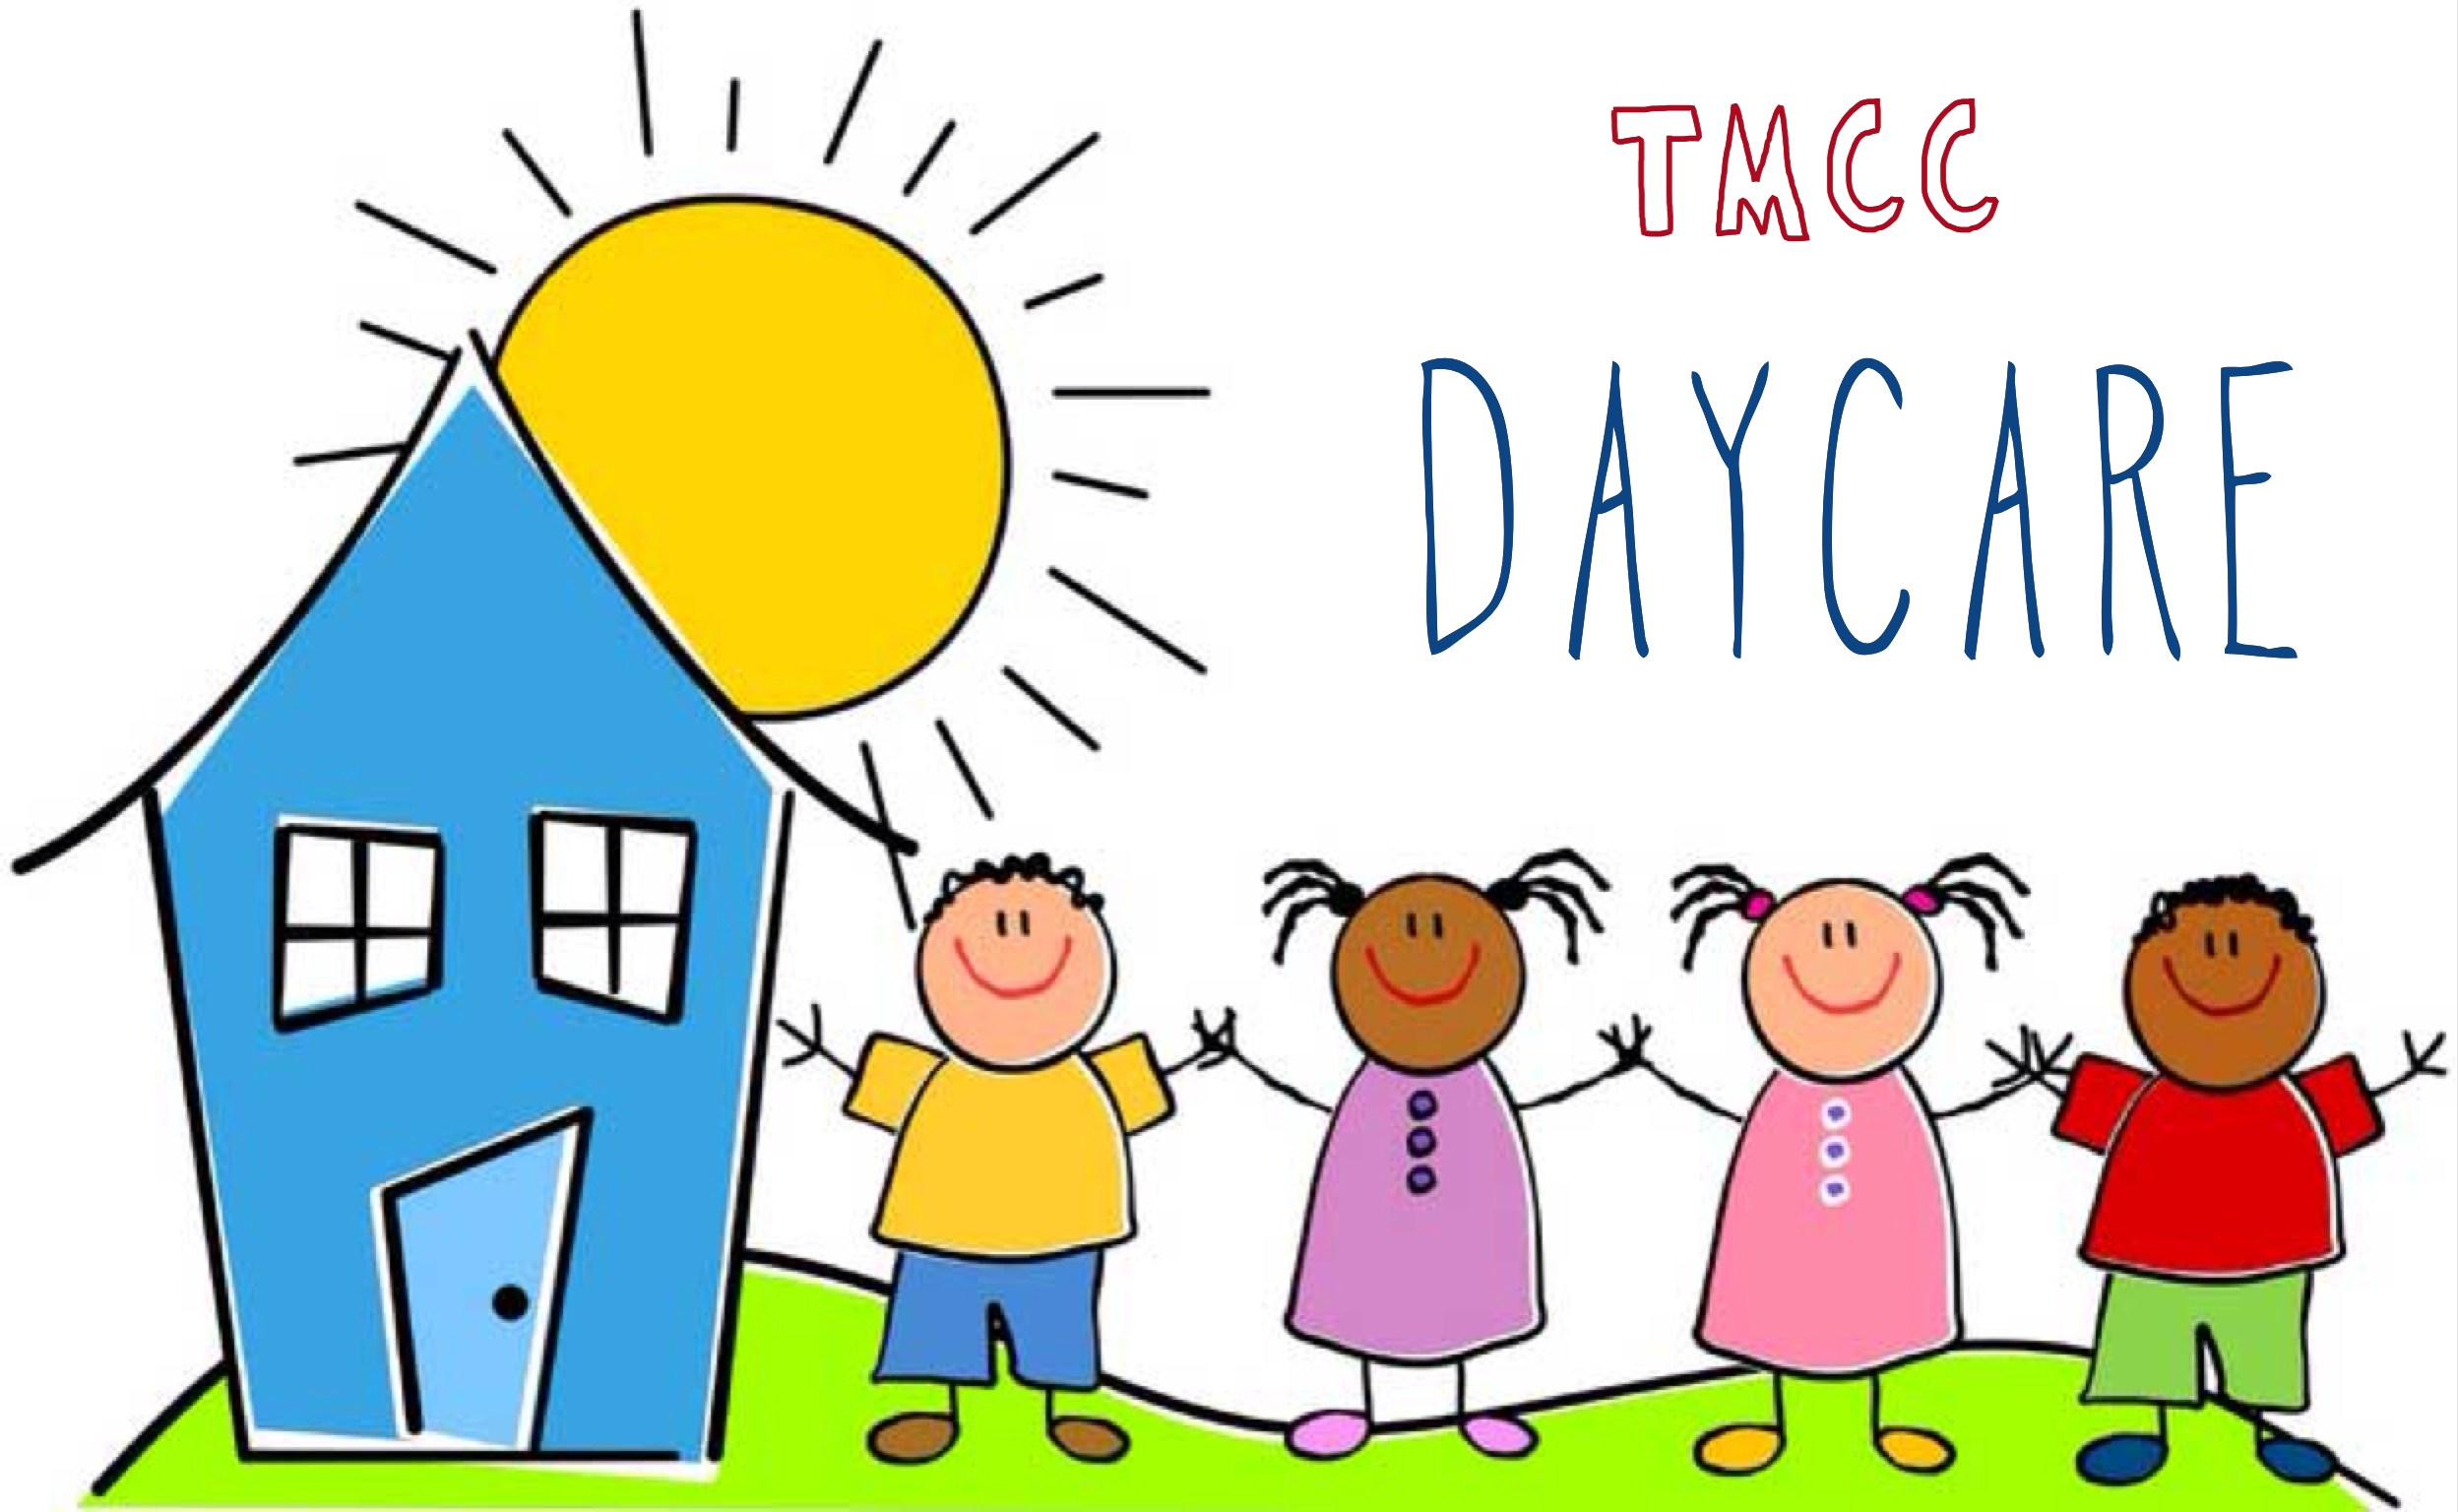 Daycare clipart kid book. Preschool ten mile community